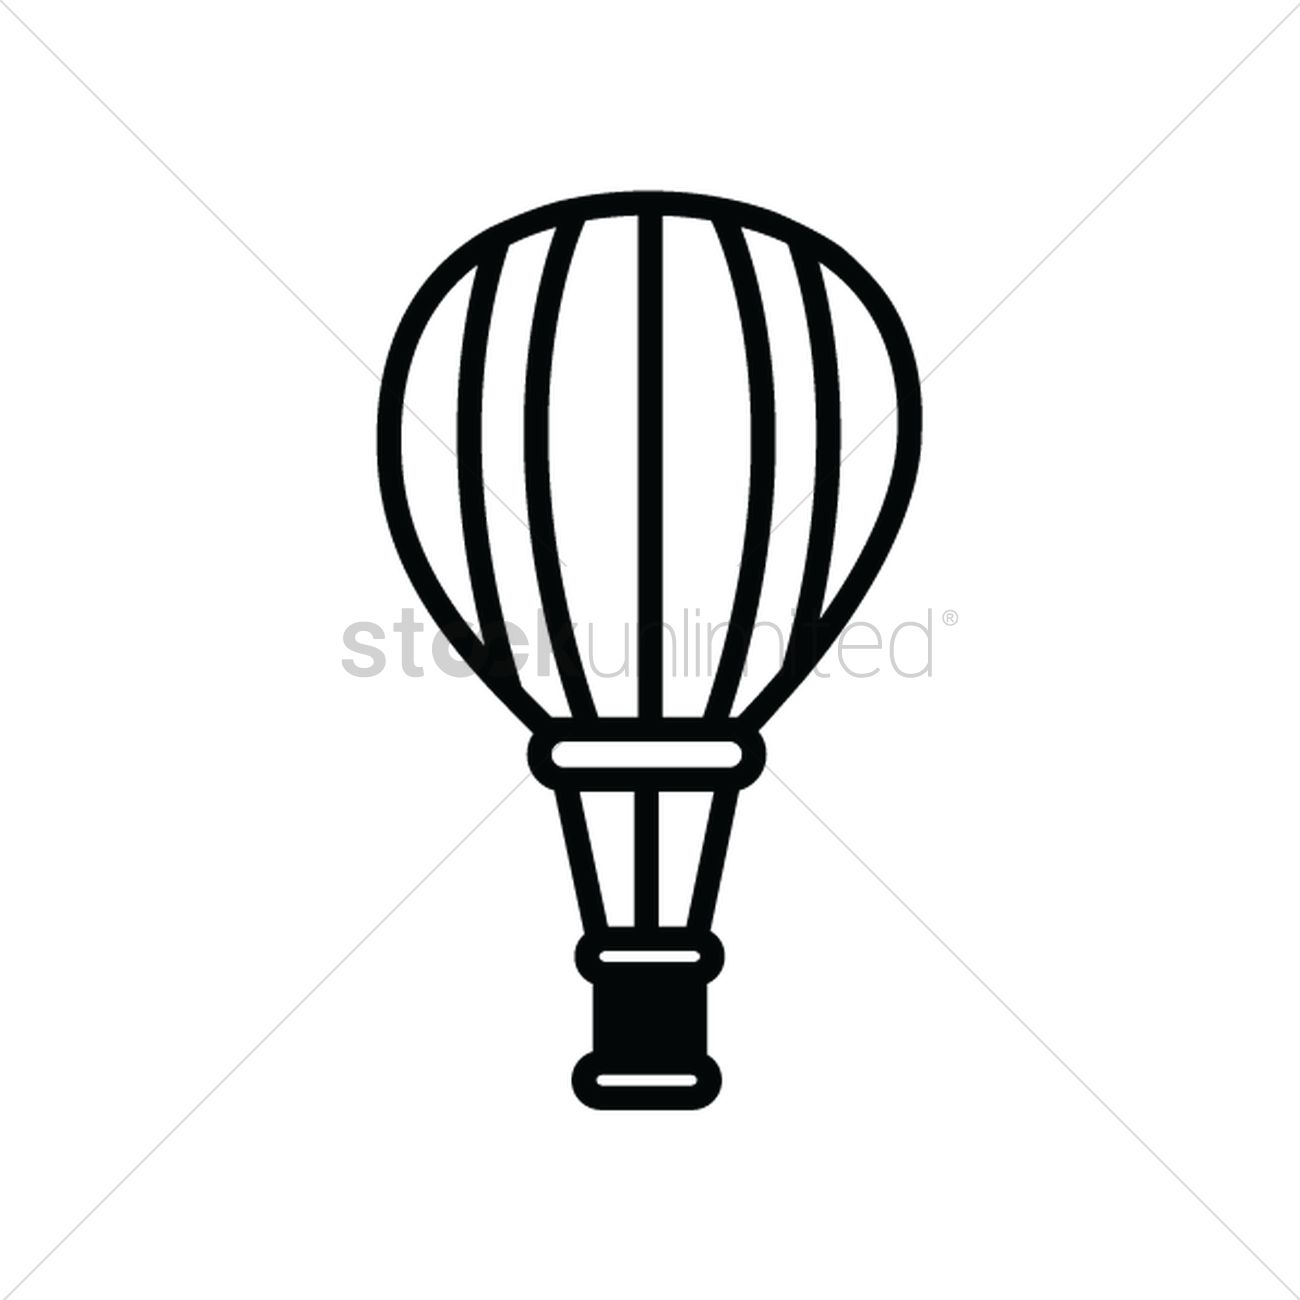 1300x1300 Hot Air Balloon Silhouette Vector Image